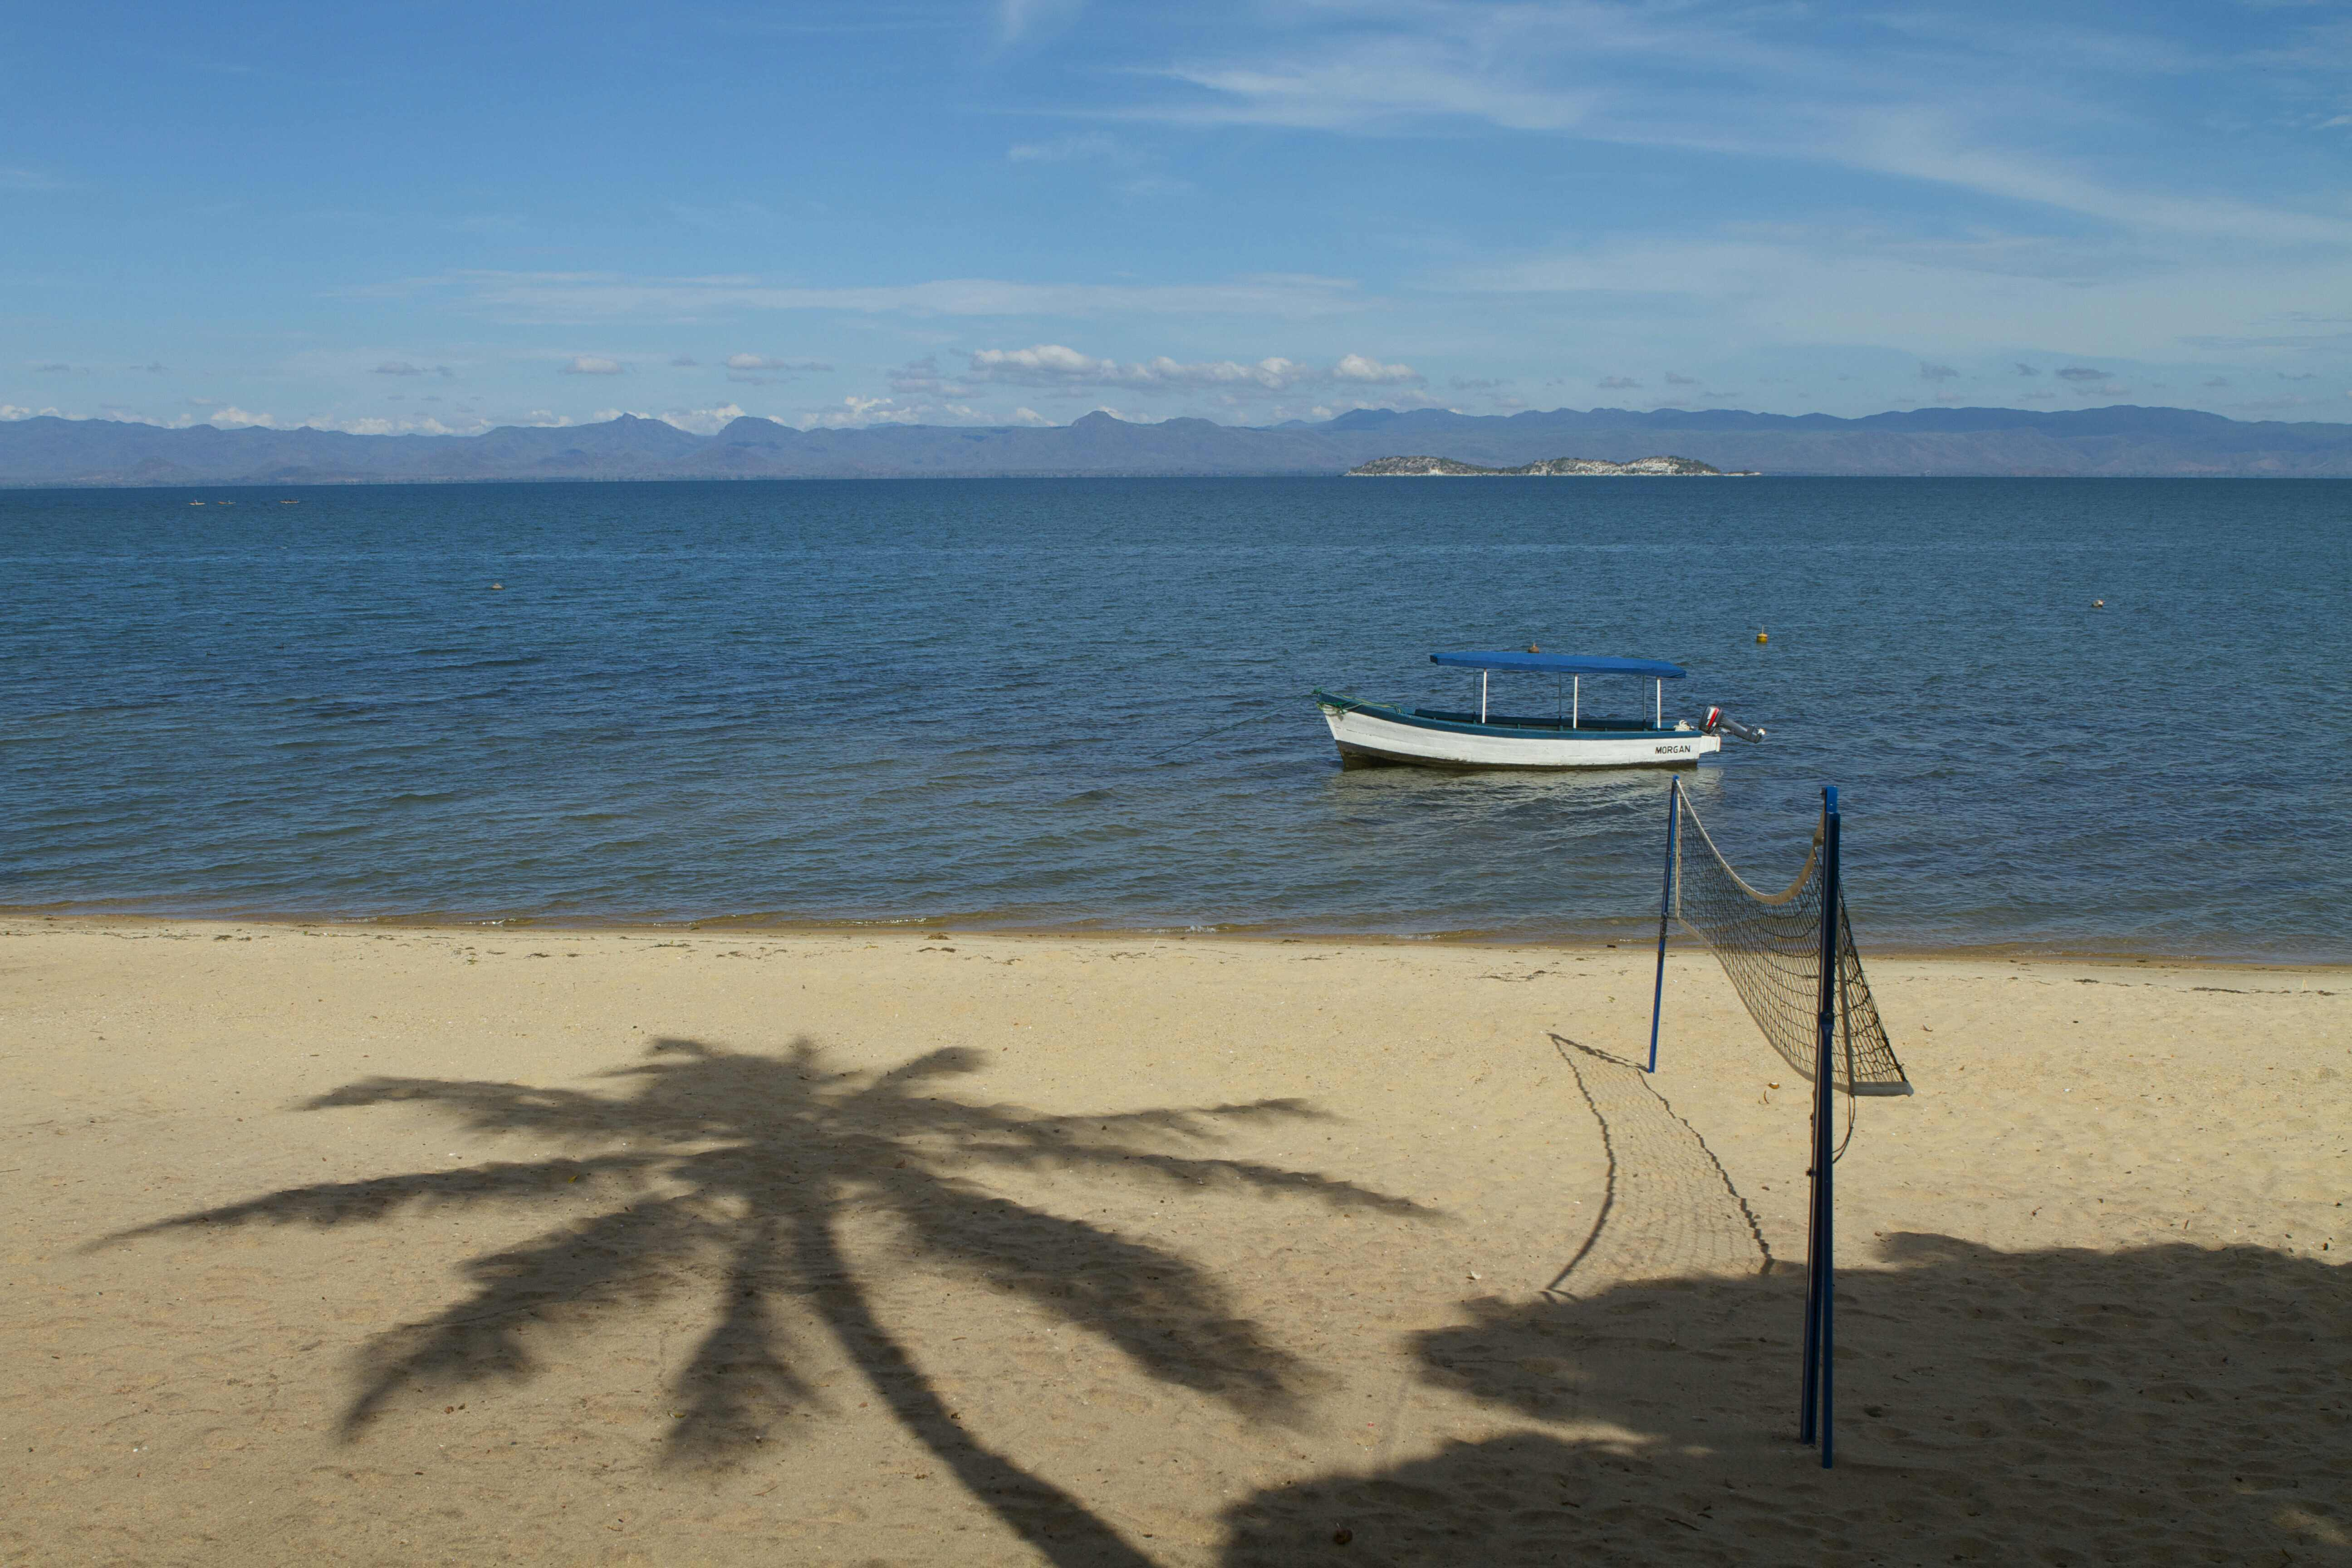 Where is the ideal location for enjoying the blue lake, the golden sands and the blue skies of Lake Malawi?